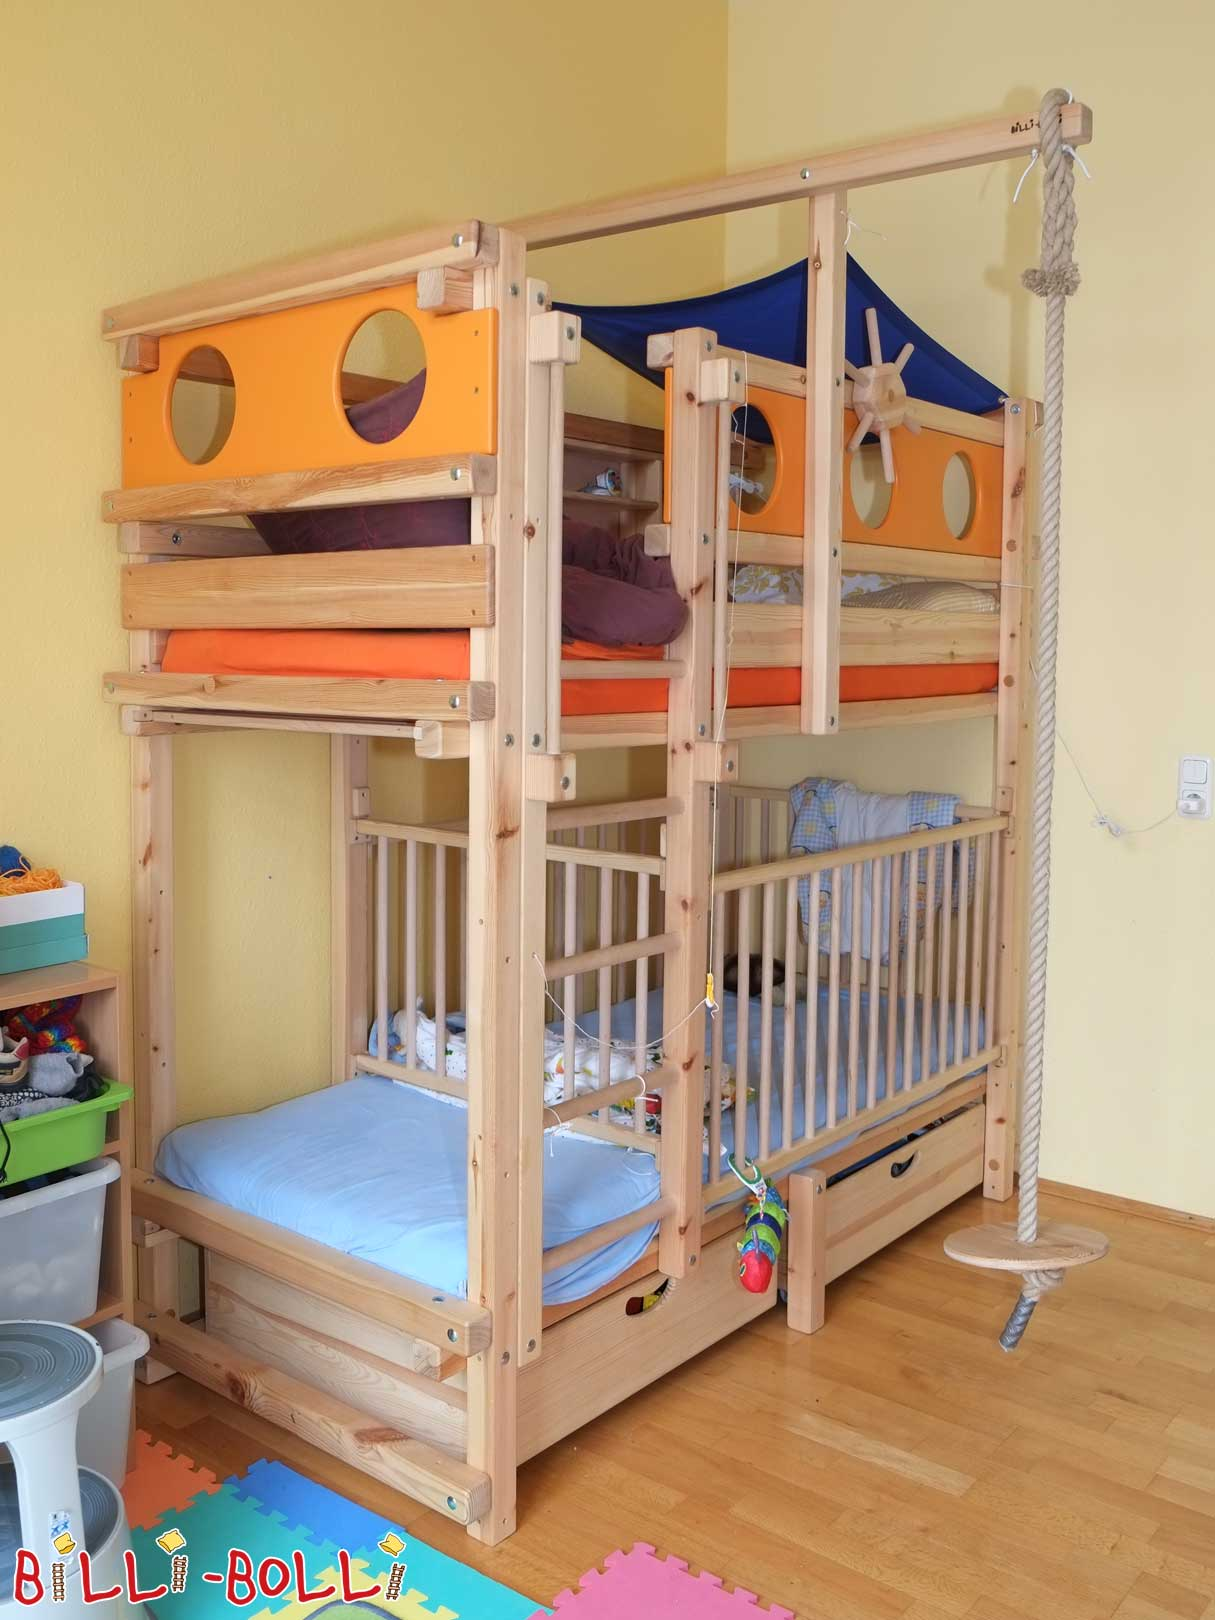 Kinderbett 90x200 Mit Rausfallschutz Bunk Bed | Buy Online | Billi-bolli Kids' Furniture